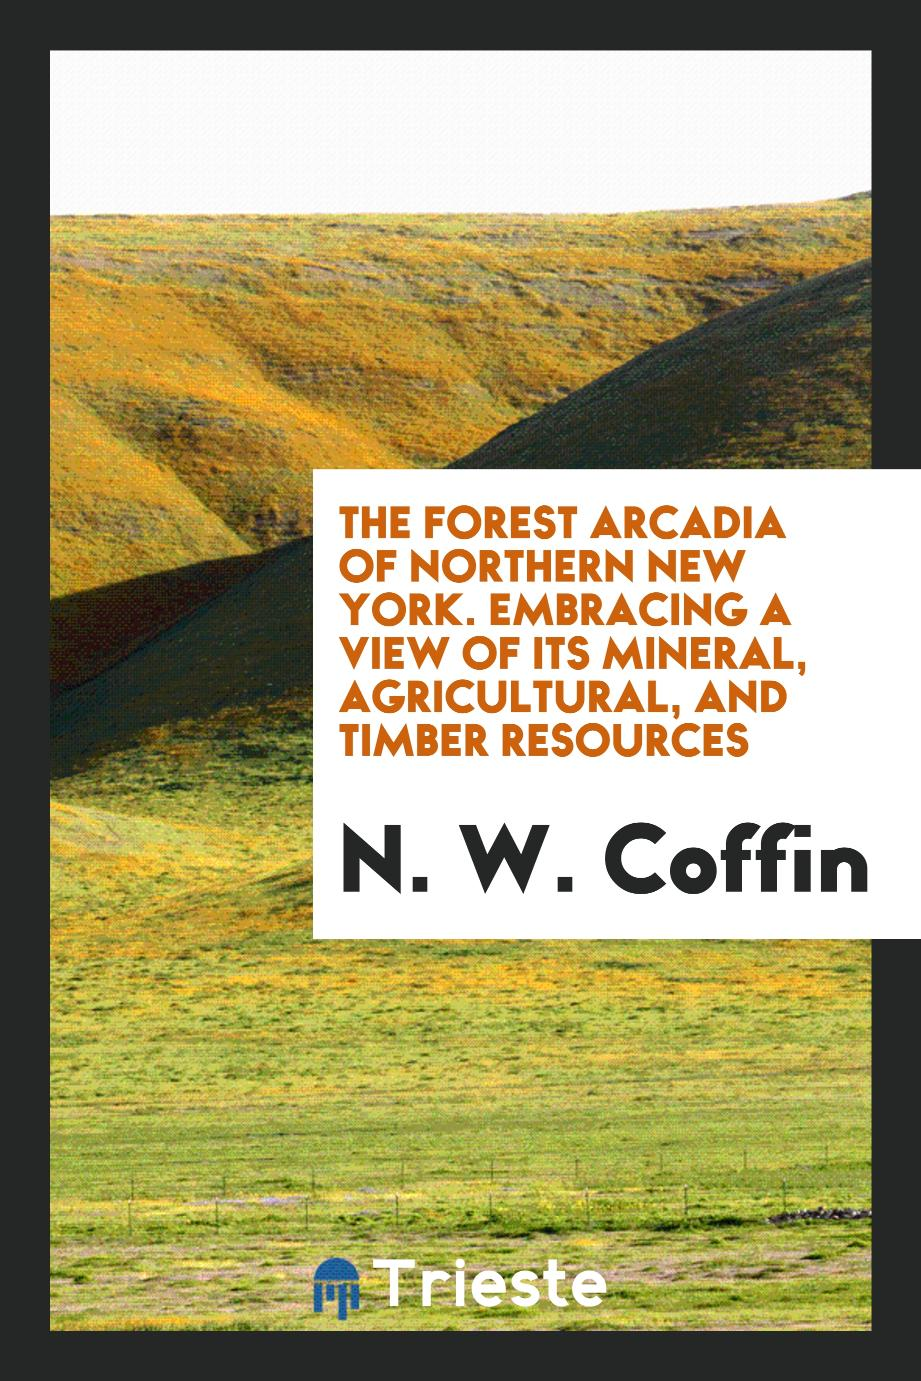 The Forest Arcadia of Northern New York. Embracing a View of Its Mineral, Agricultural, and Timber Resources